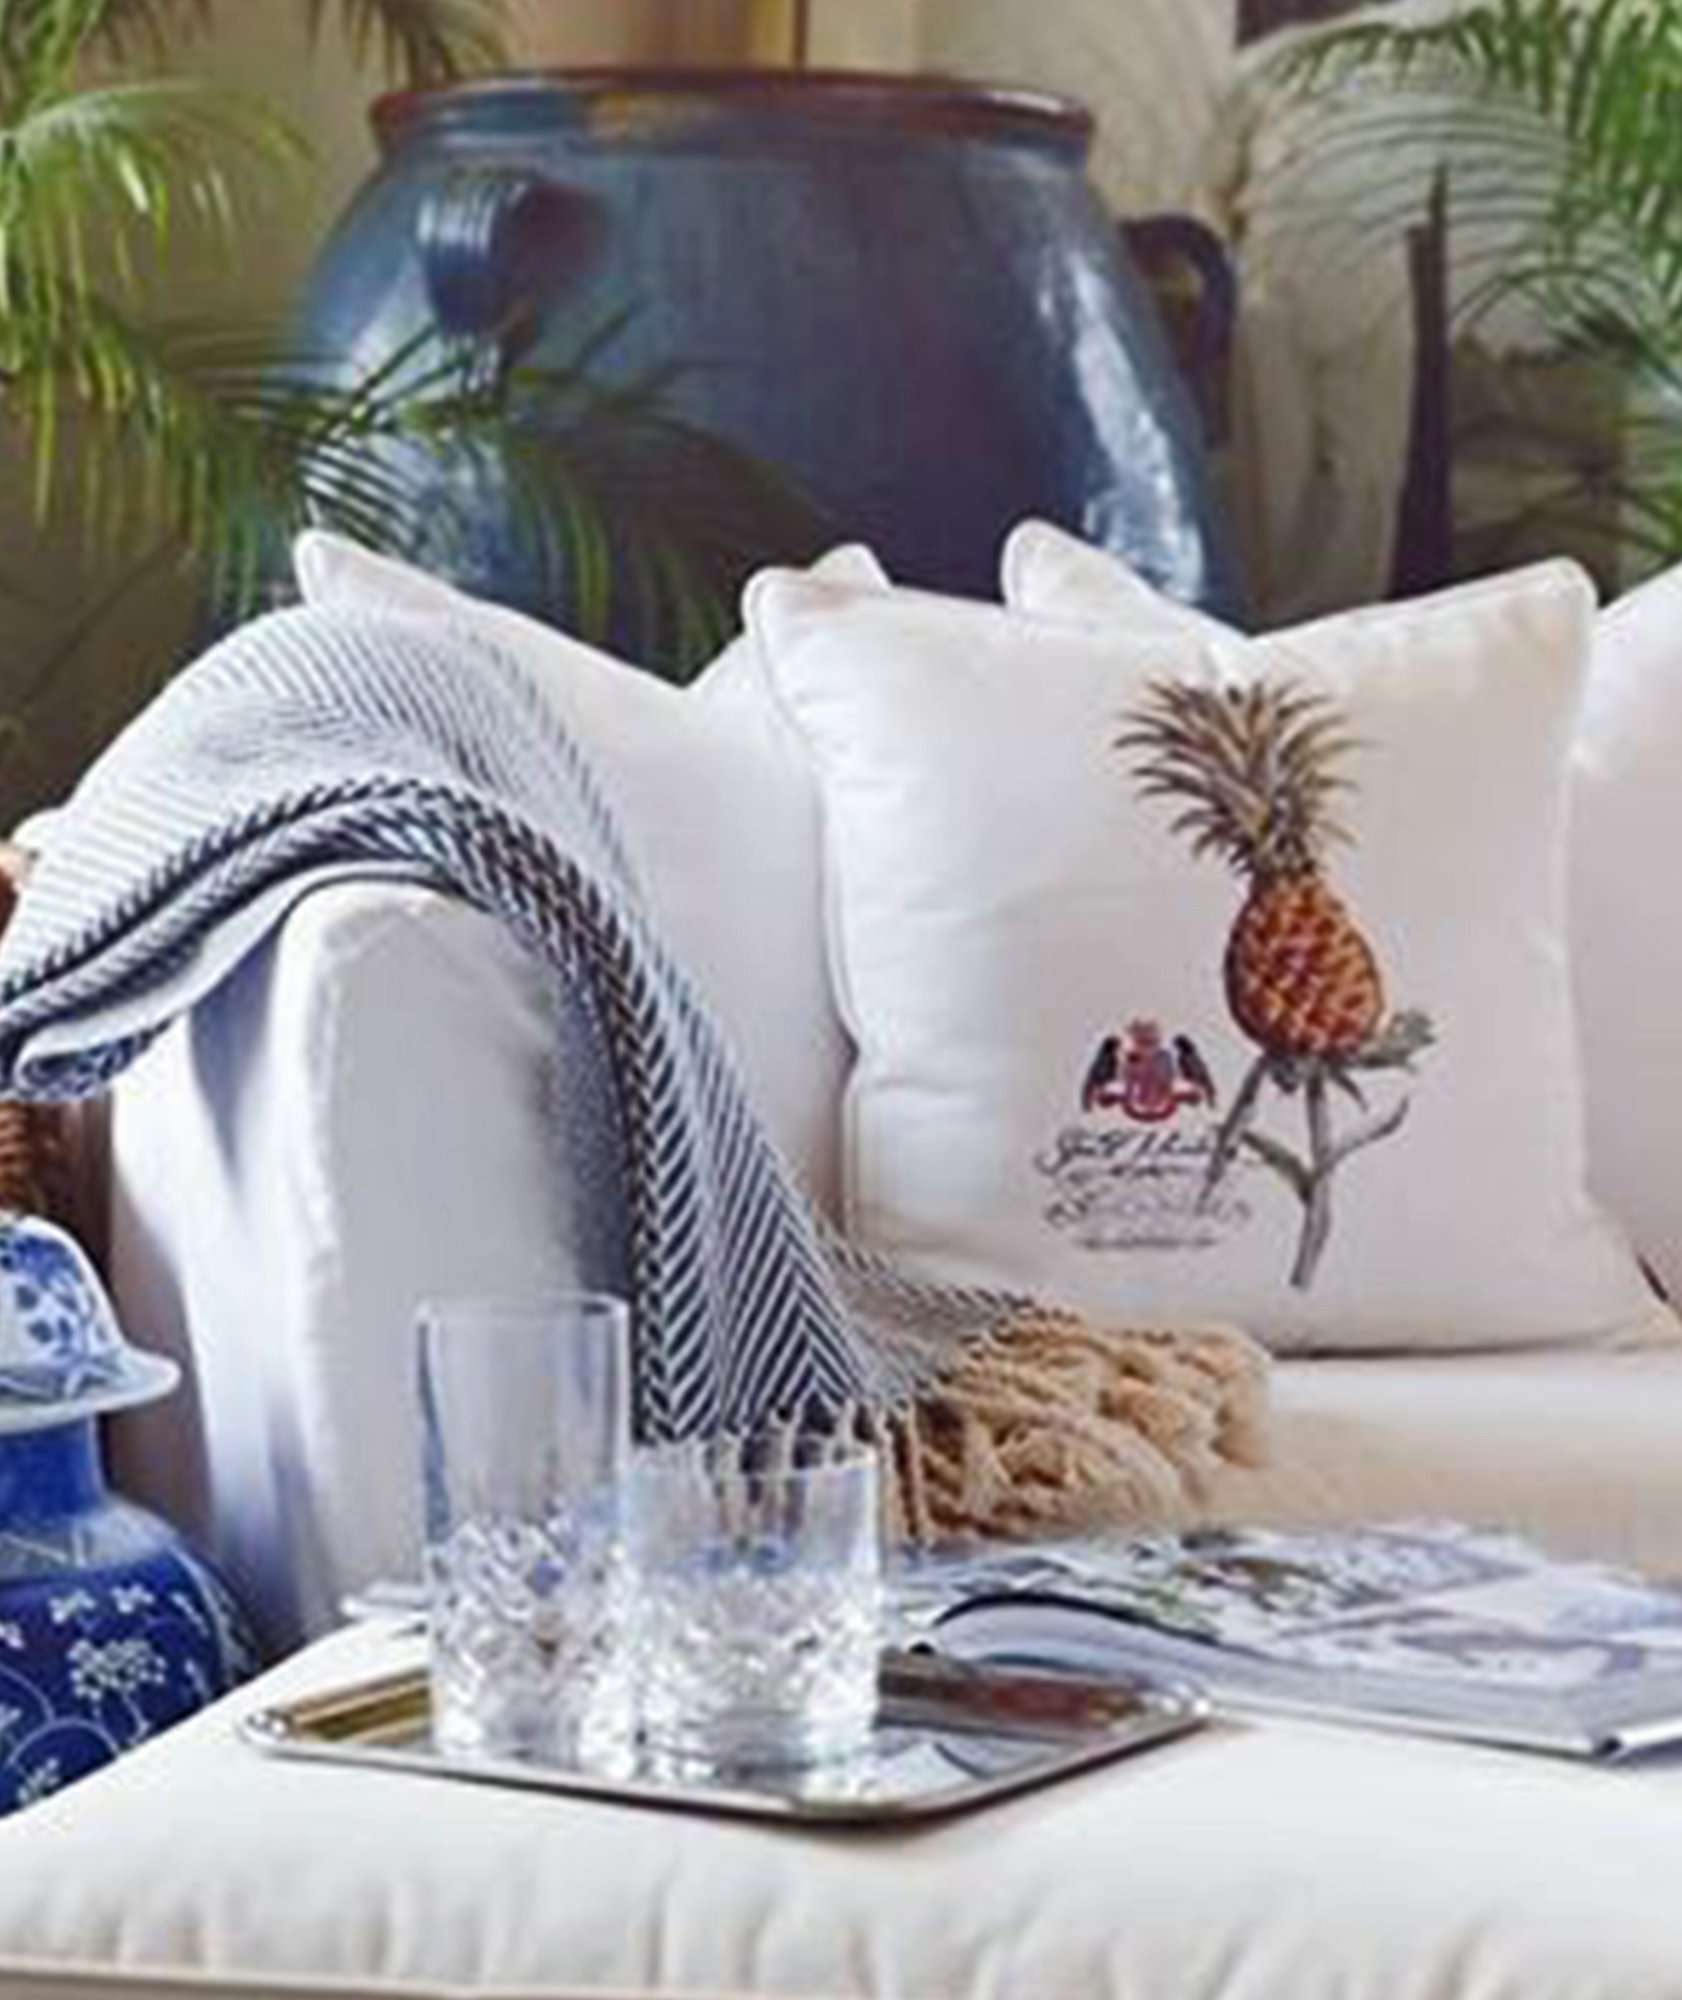 STUART MEMBERY HOME COLLECTION BAHAMA PINEAPPLE www.stuartmemberyhome.com